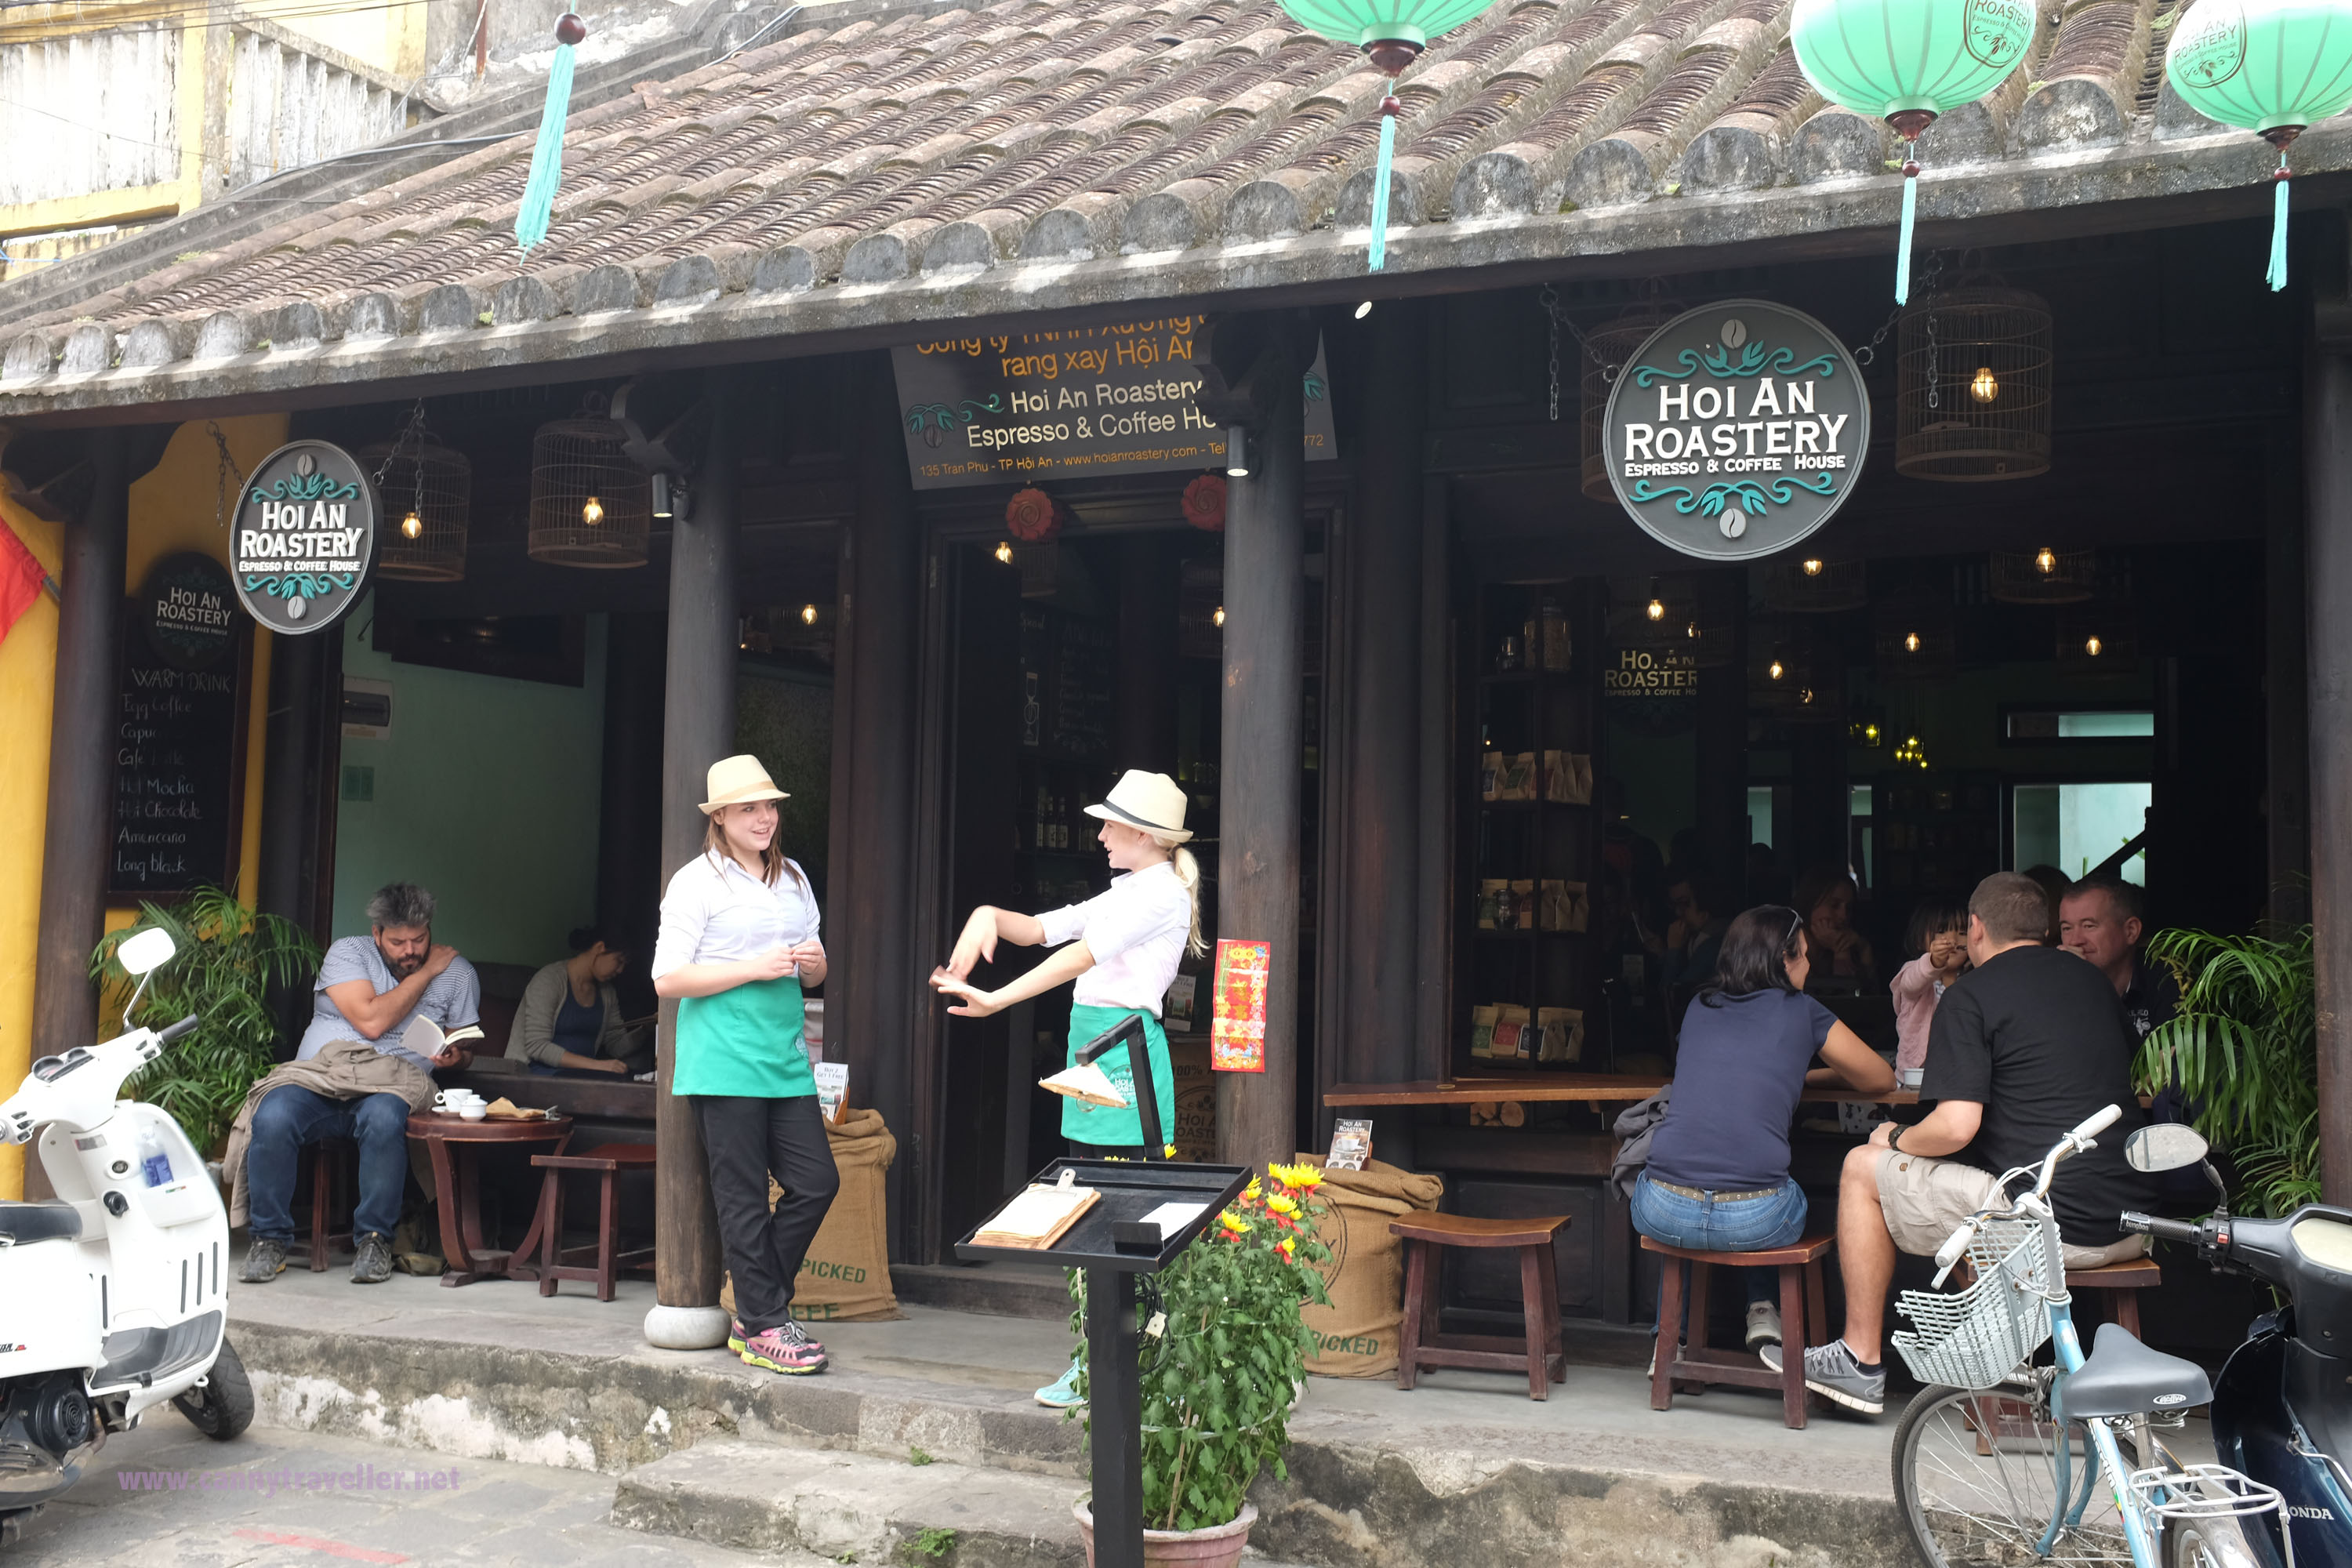 Coffee shop in the main shopping street, Hoi An, Vietnam